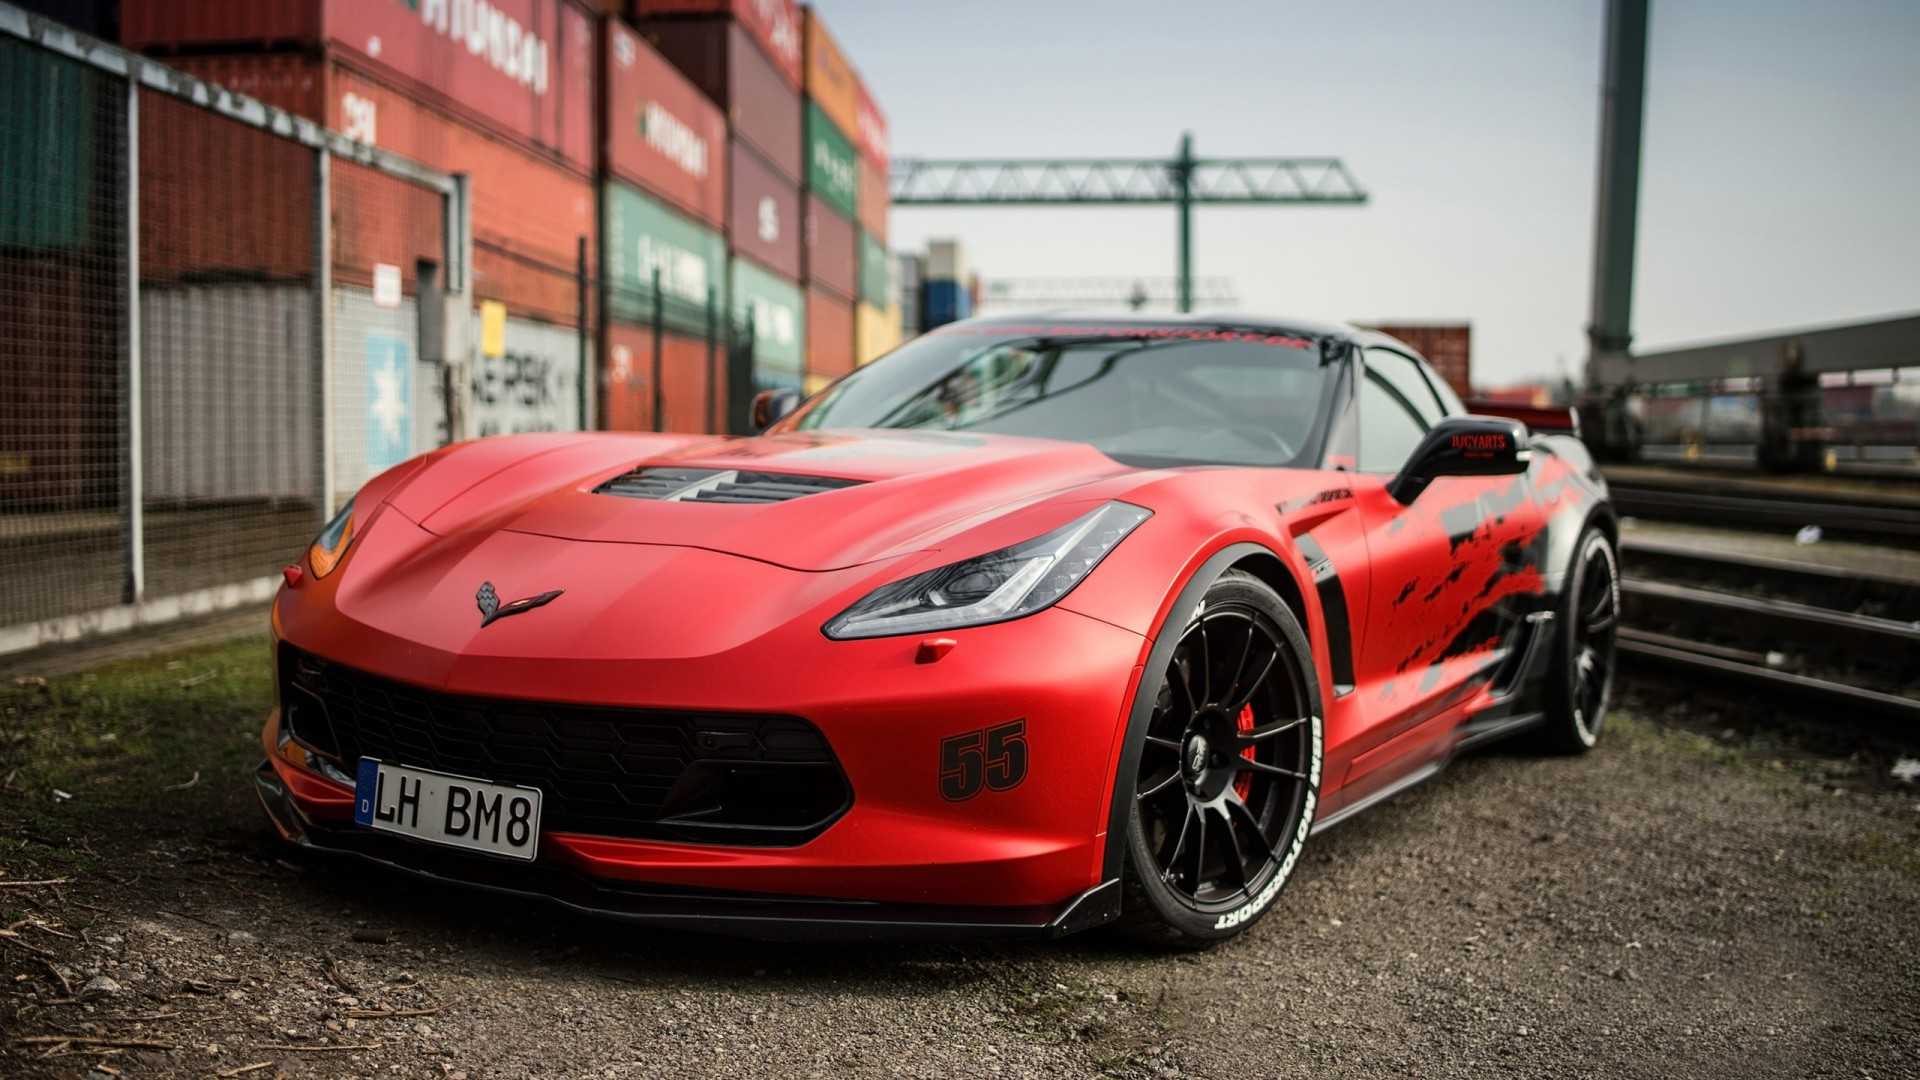 2016 bbm motorsport chevrolet corvette c7 z06 wallpaper hd car wallpapers id 6430. Black Bedroom Furniture Sets. Home Design Ideas